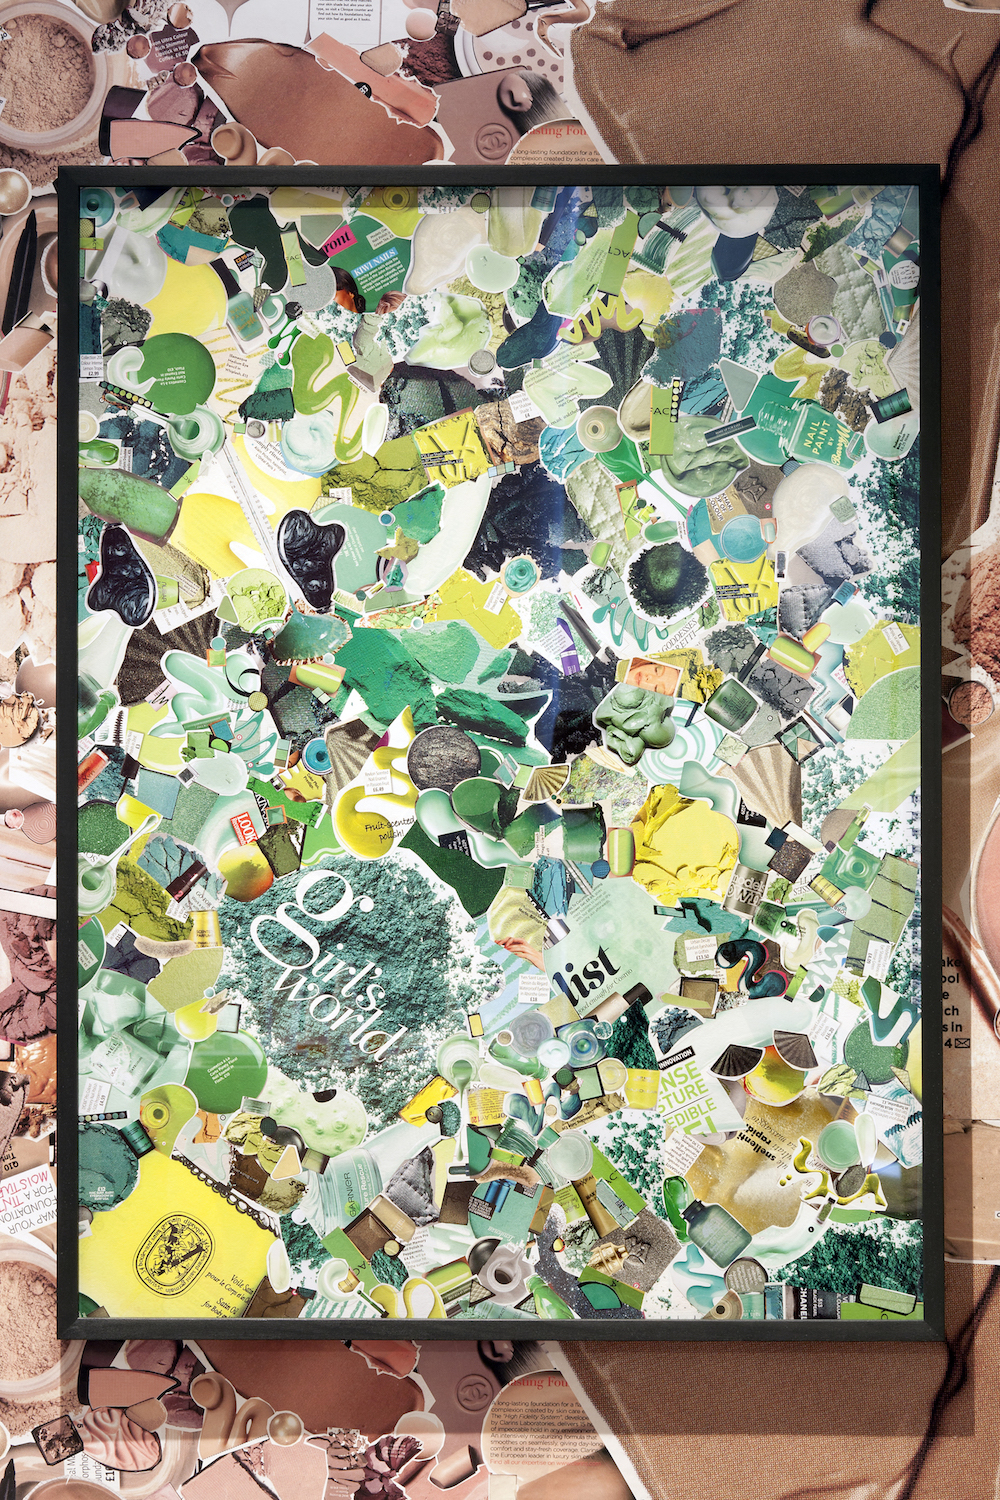 Ludovica Gioscia, Green, 2011. Make-up ads on museum board, paper, starch paste. Framed. 84 x 63 cm.